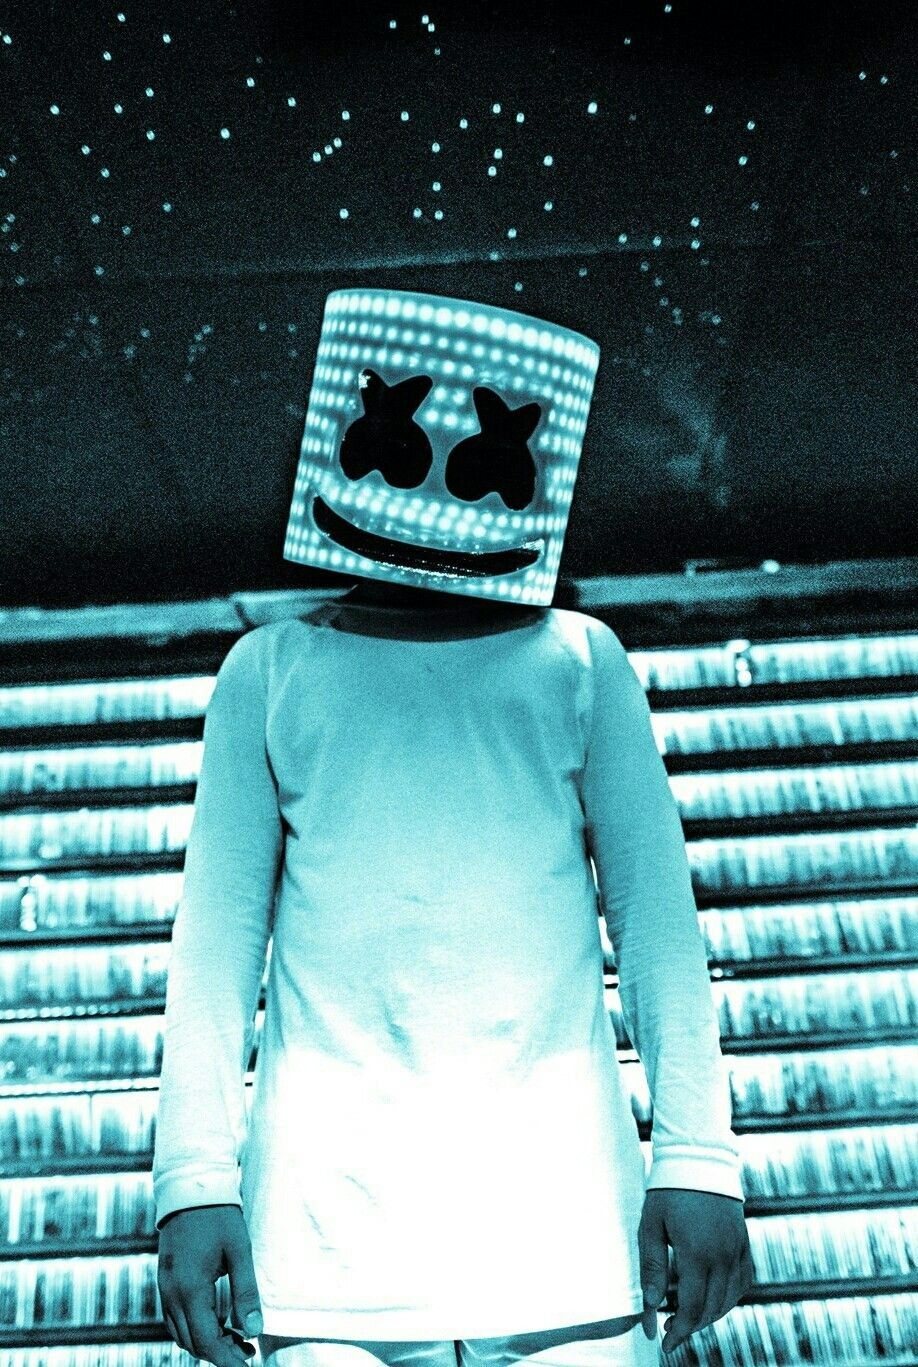 Marshmello Dj Wallpaper Hd 54 Image Collections Of